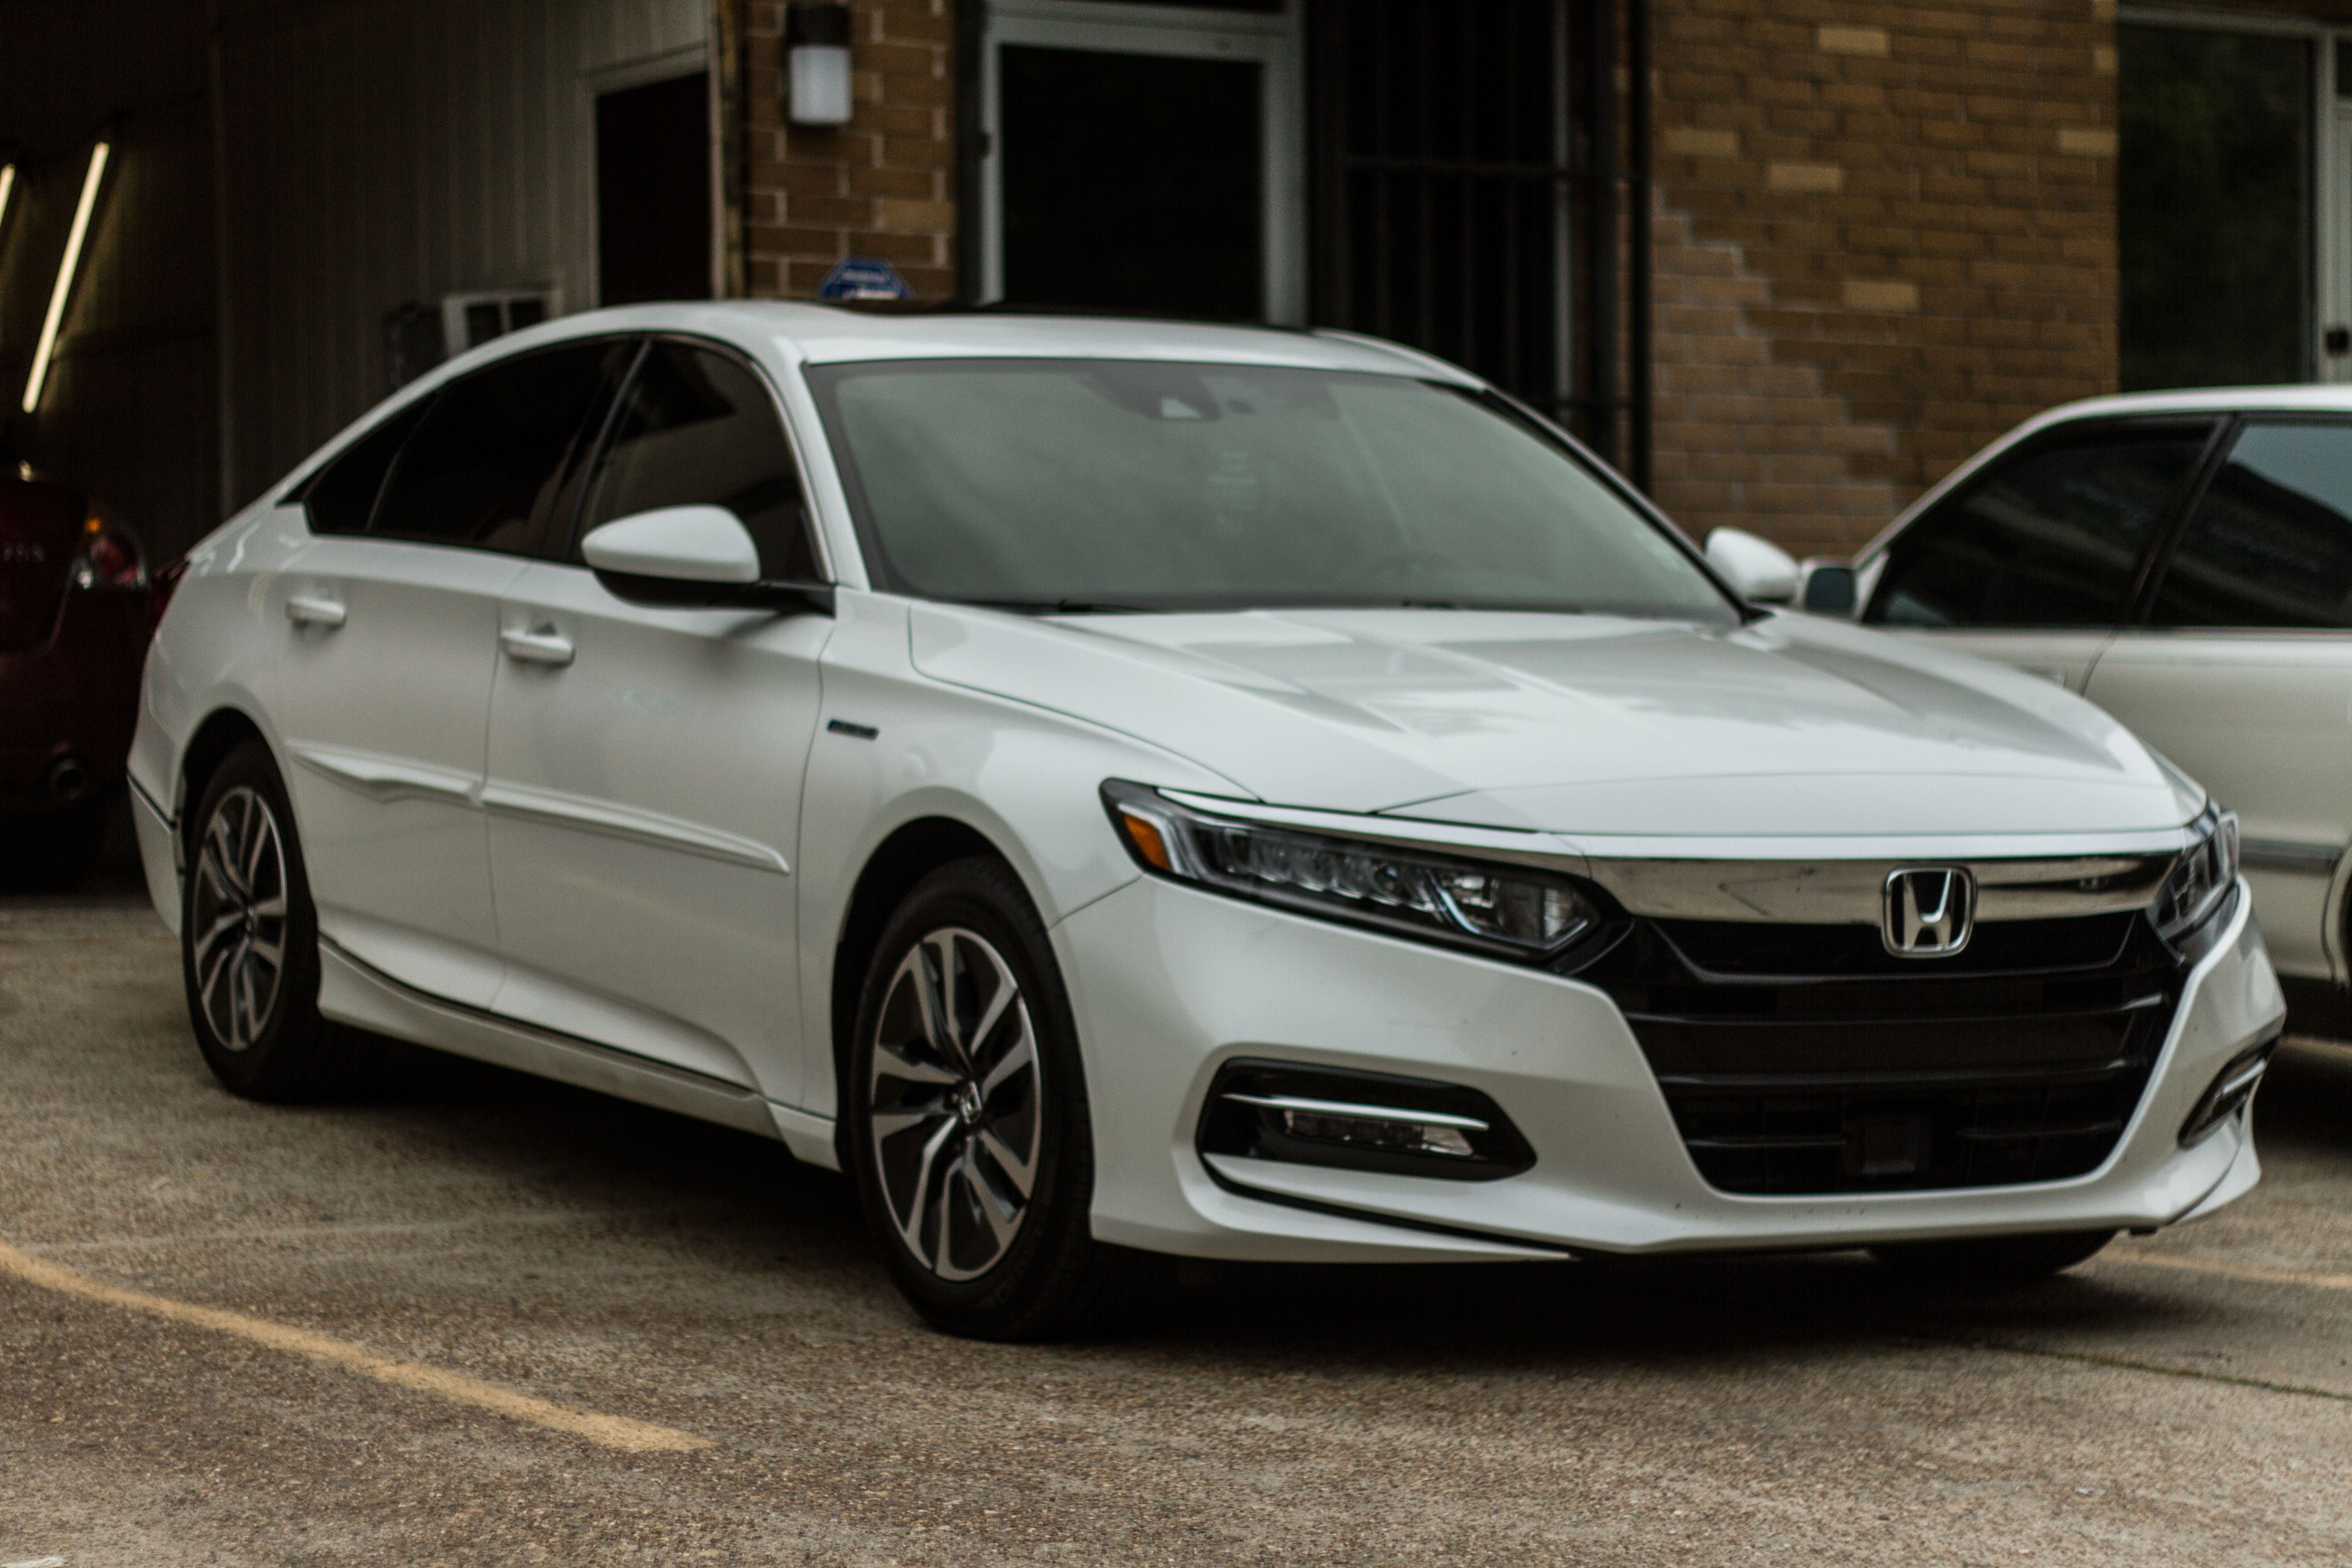 2018 honda accord tinted with ceramic on all sides back windshield sunroof ceramic tint is the most effective tint in heat reduction and will preserve  [ 5184 x 3456 Pixel ]